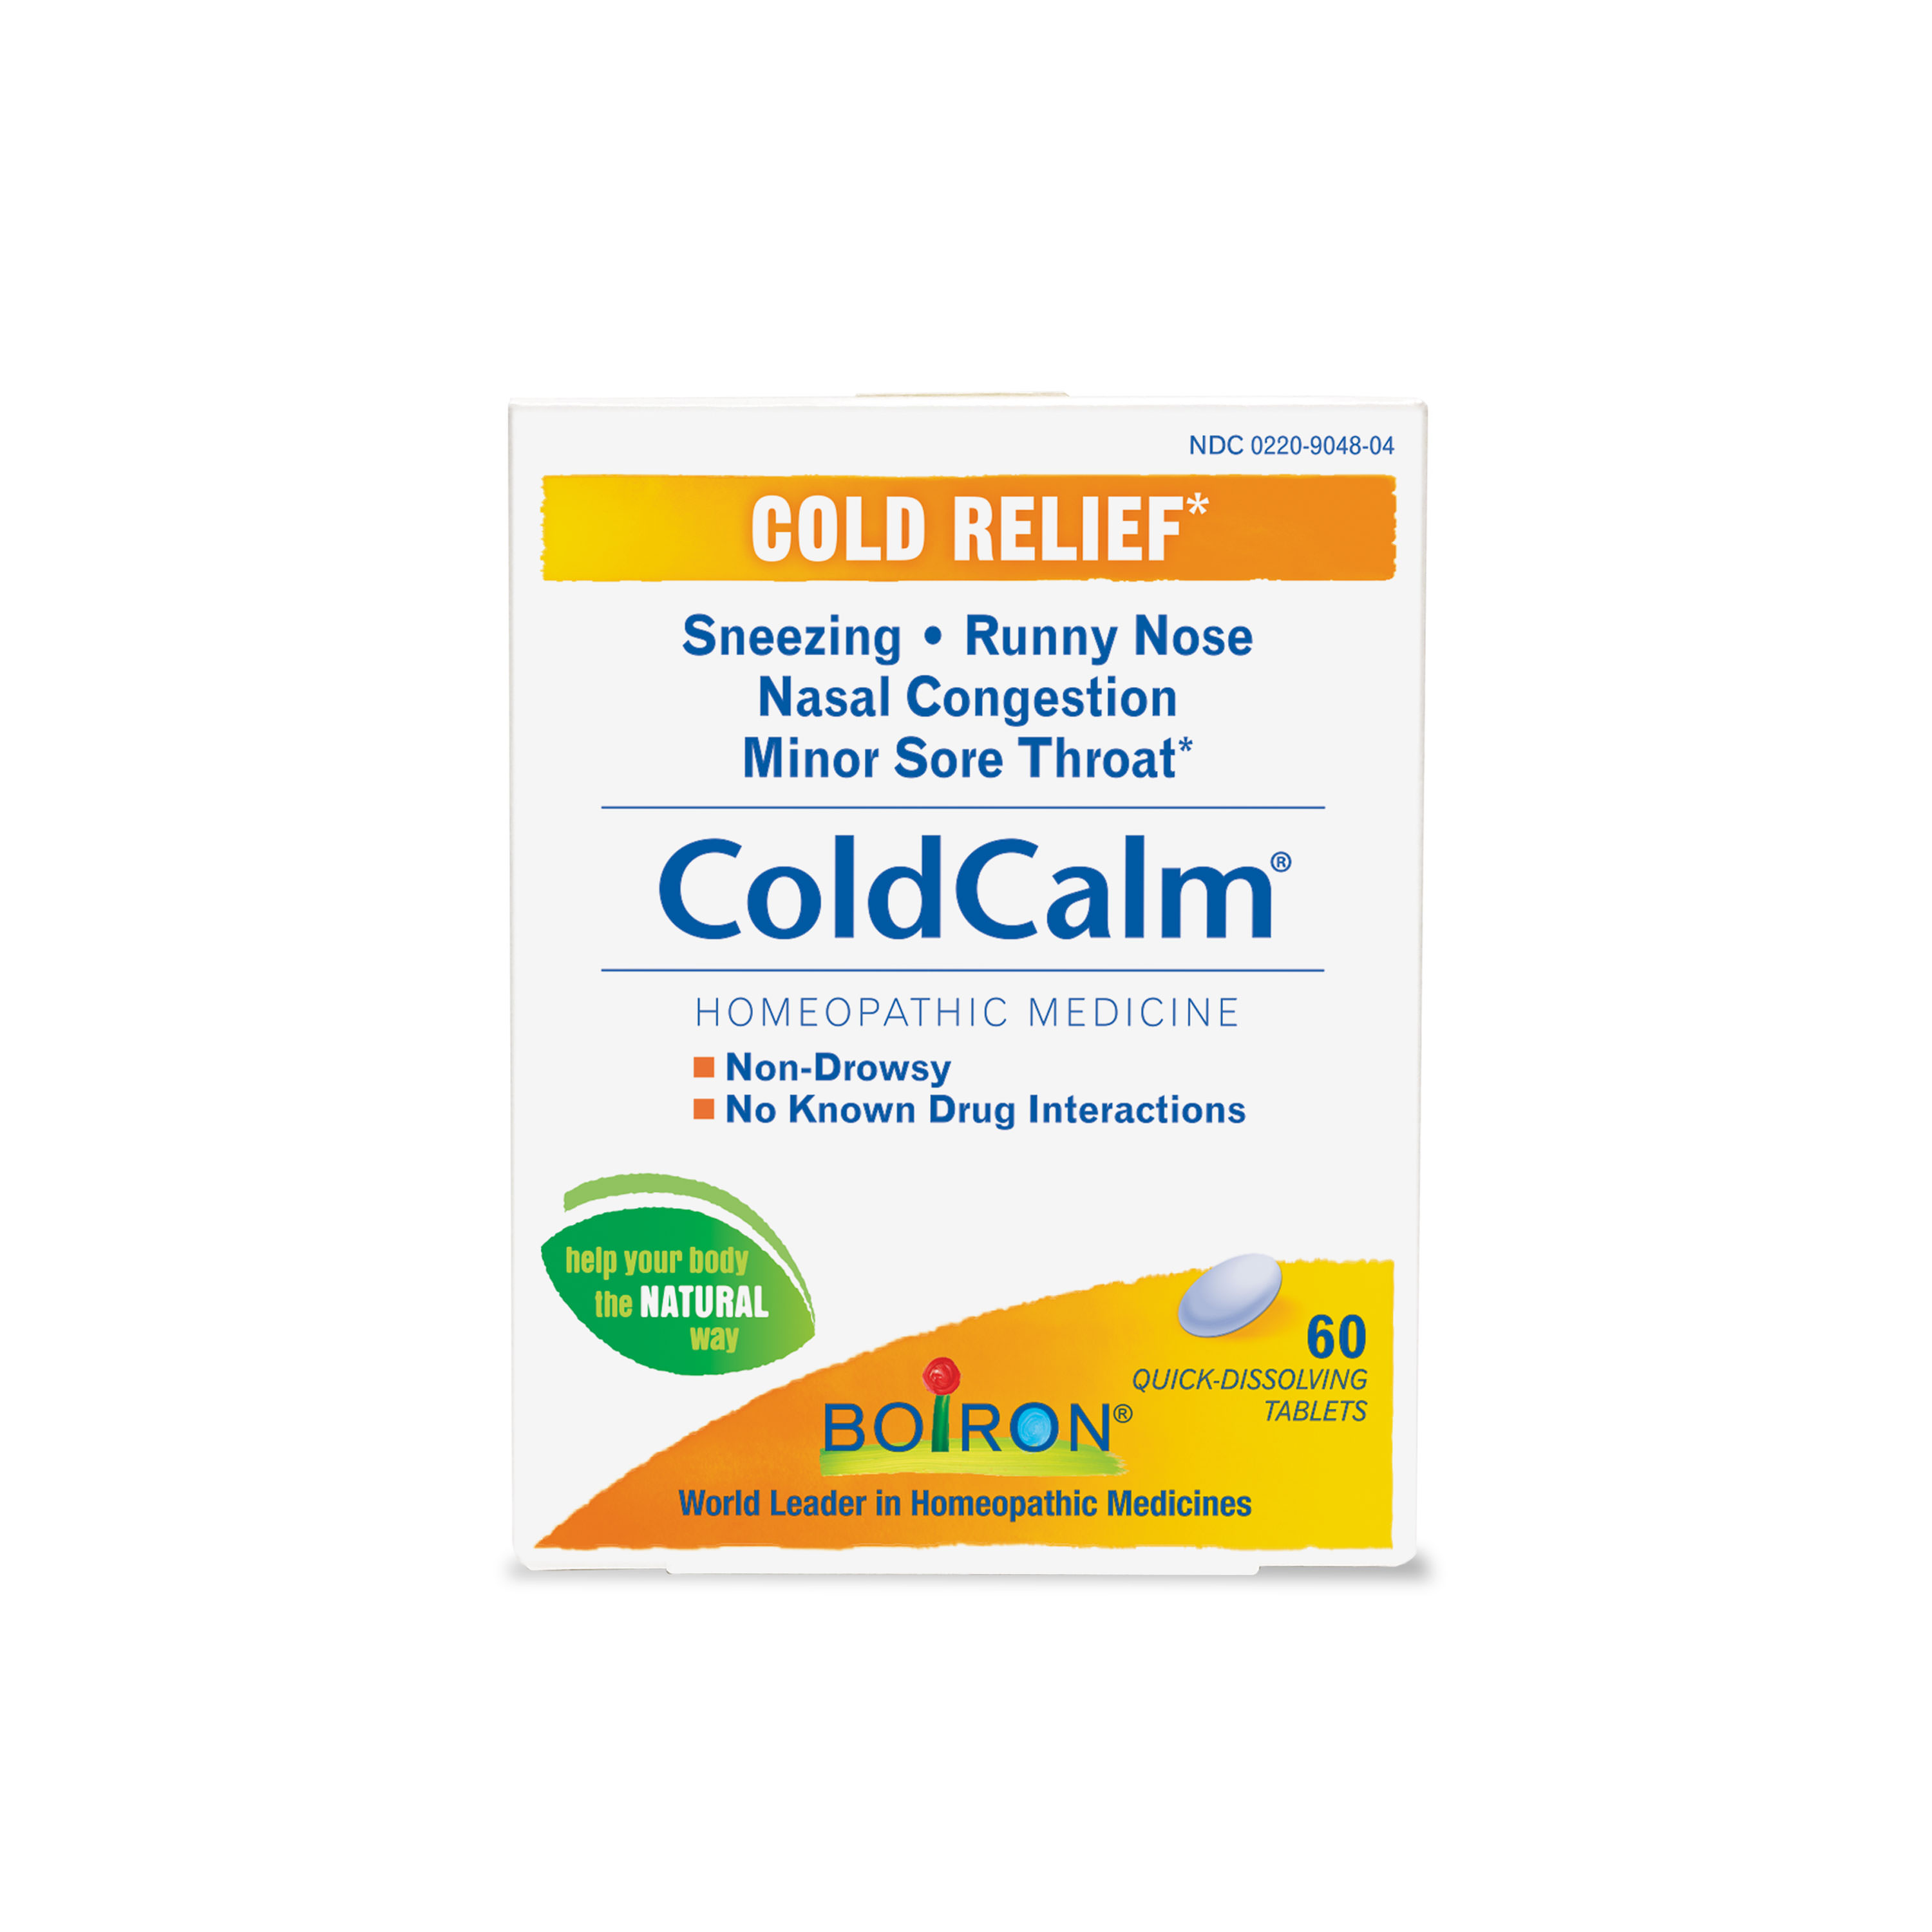 Boiron ColdCalm Cold Relief Tablets, 60 Ct